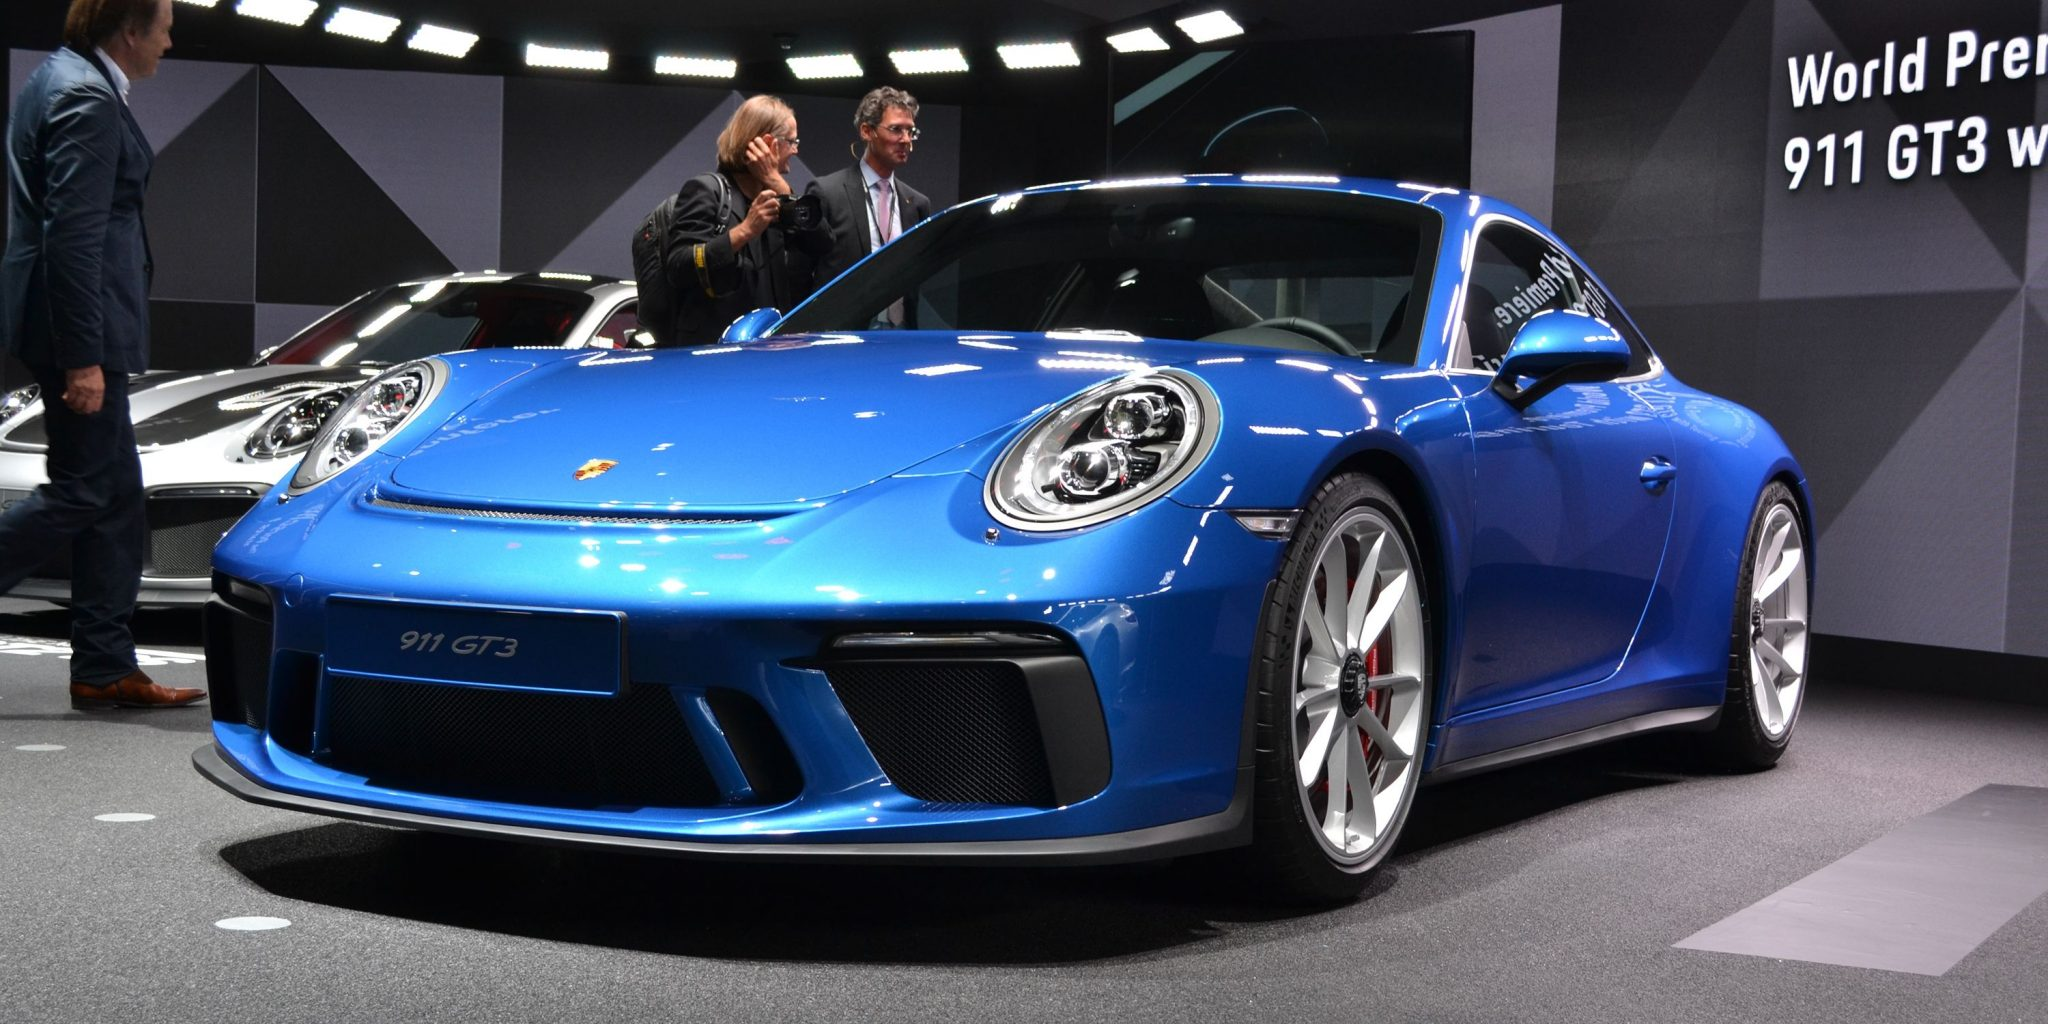 The Porsche 911 GT3 Touring Pack Is The Ultimate Drivers Porsche